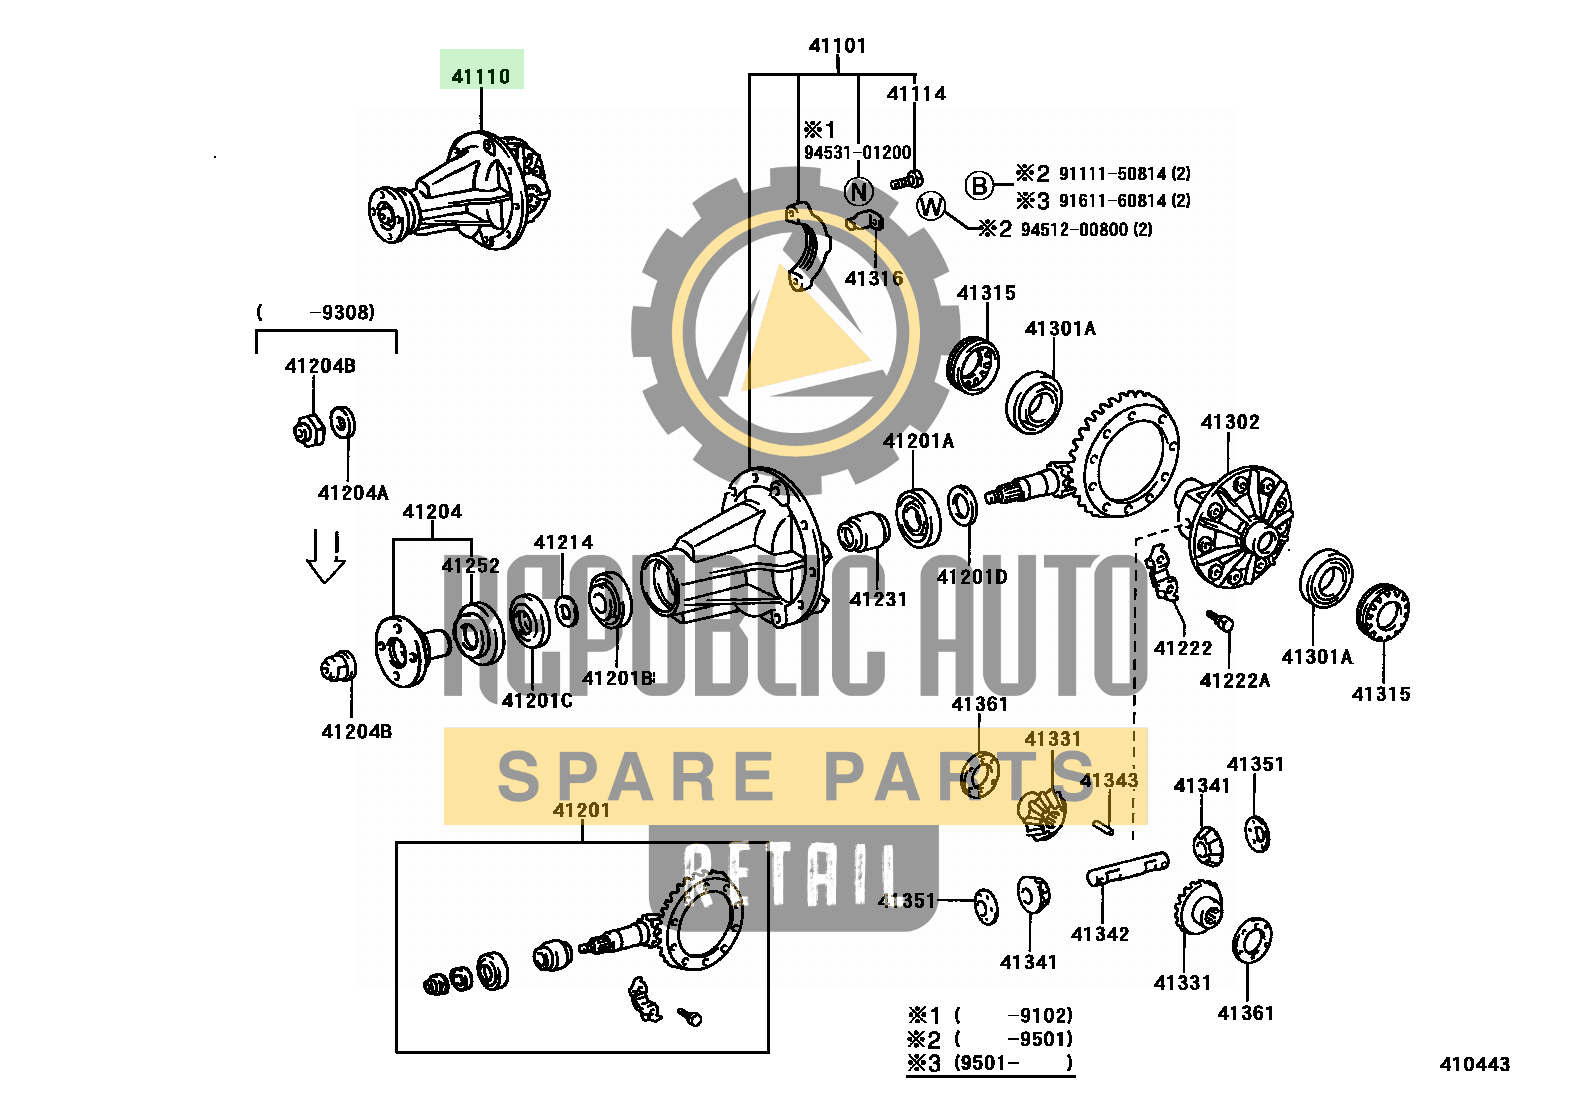 Part number: 41110-35650 	HILUX          (JPP) 671550 (LN105L-PRMRSW) / REAR AXLE HOUSING & DIFFERENTIAL